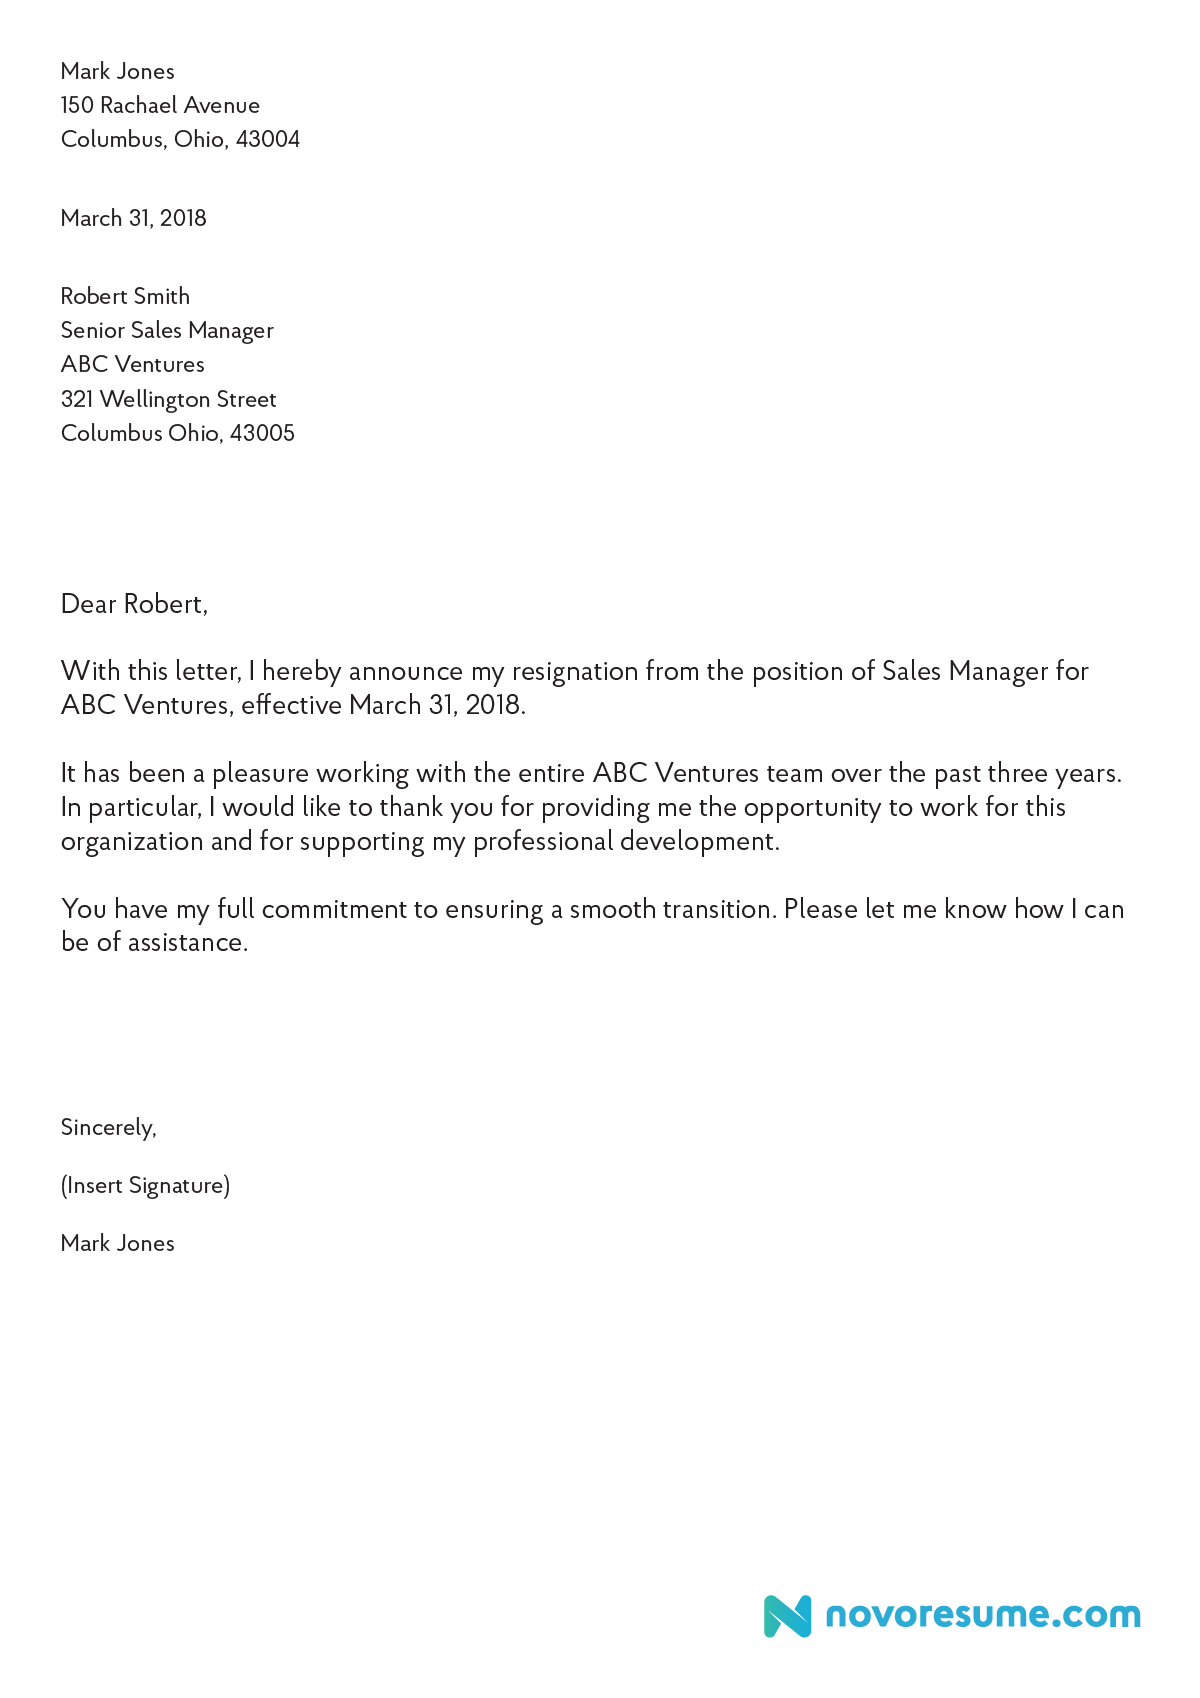 Resgination vatozozdevelopment how to write a letter of resignation 2018 extensive guide resgination 11 sample resignation letter thecheapjerseys Choice Image